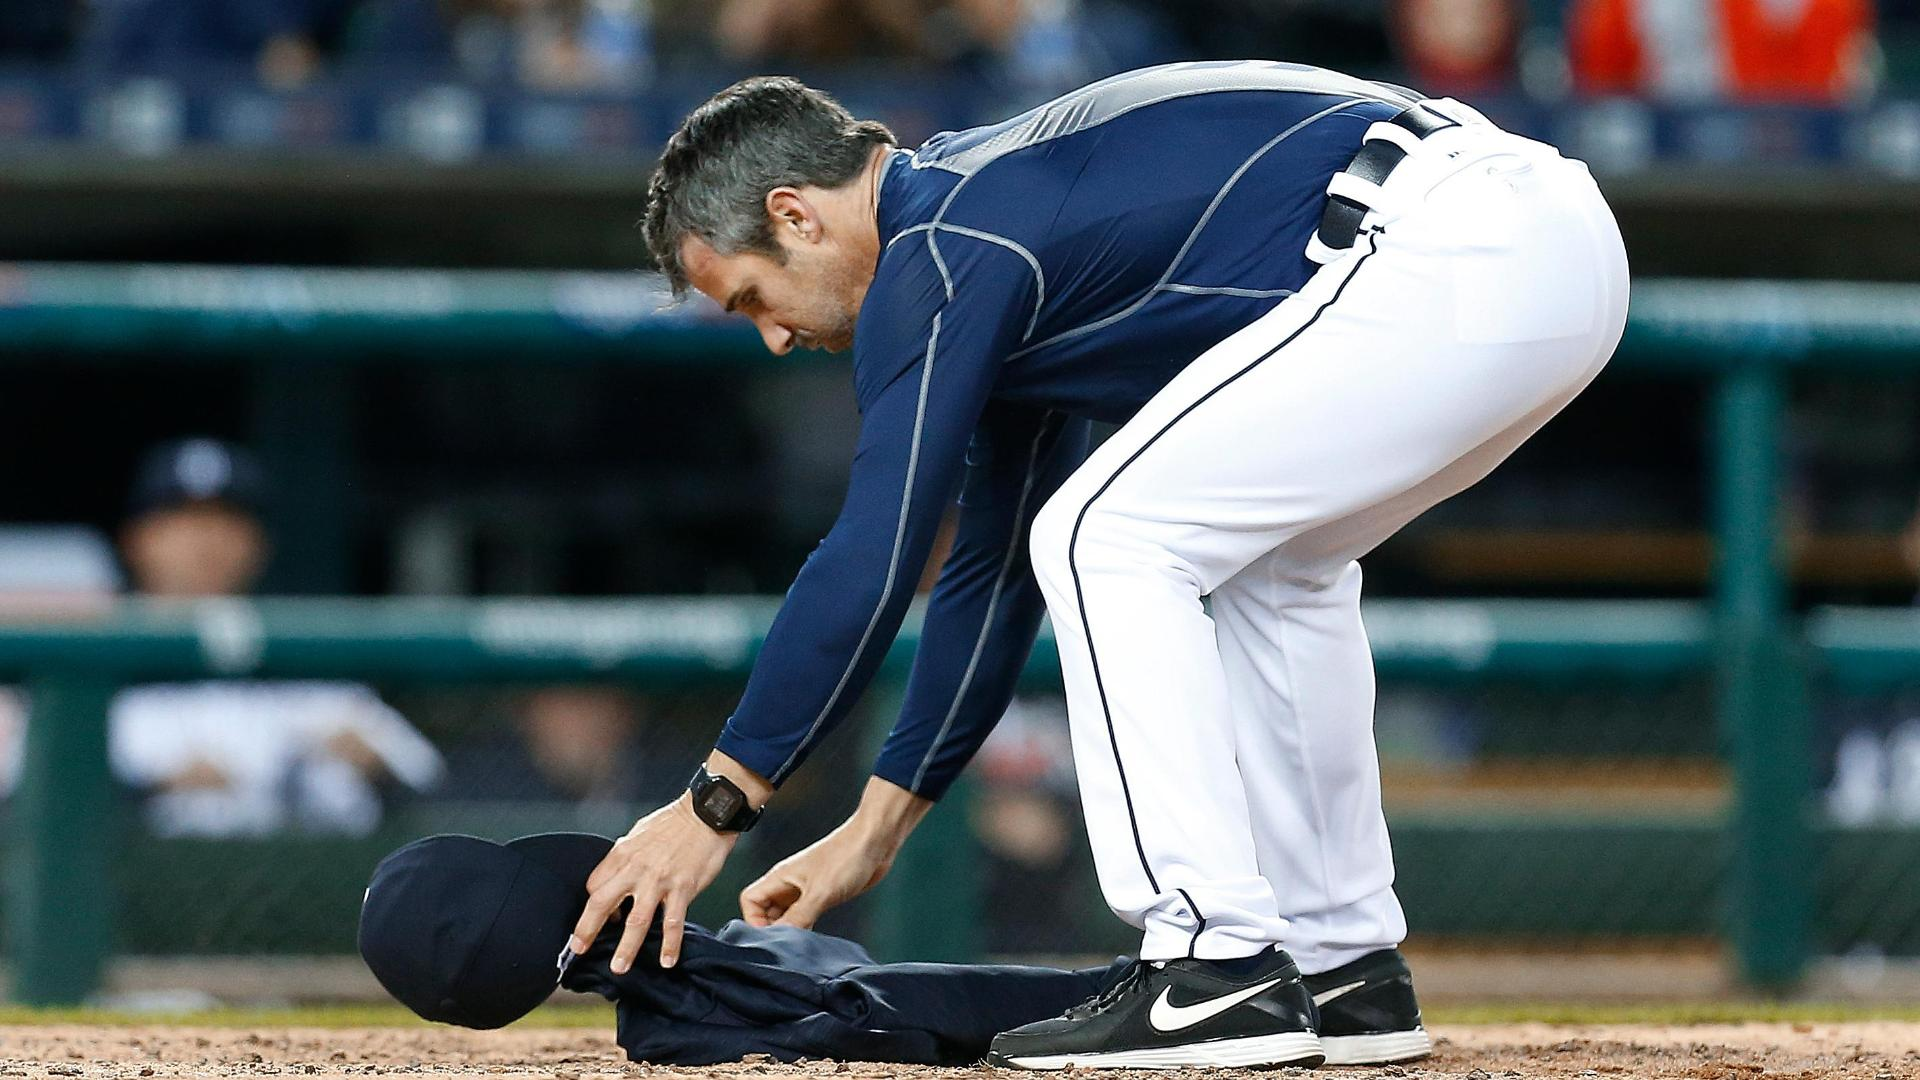 http://a.espncdn.com/media/motion/2016/0517/dm_160516_Brad_Ausmus_ejected_Tigers141/dm_160516_Brad_Ausmus_ejected_Tigers141.jpg